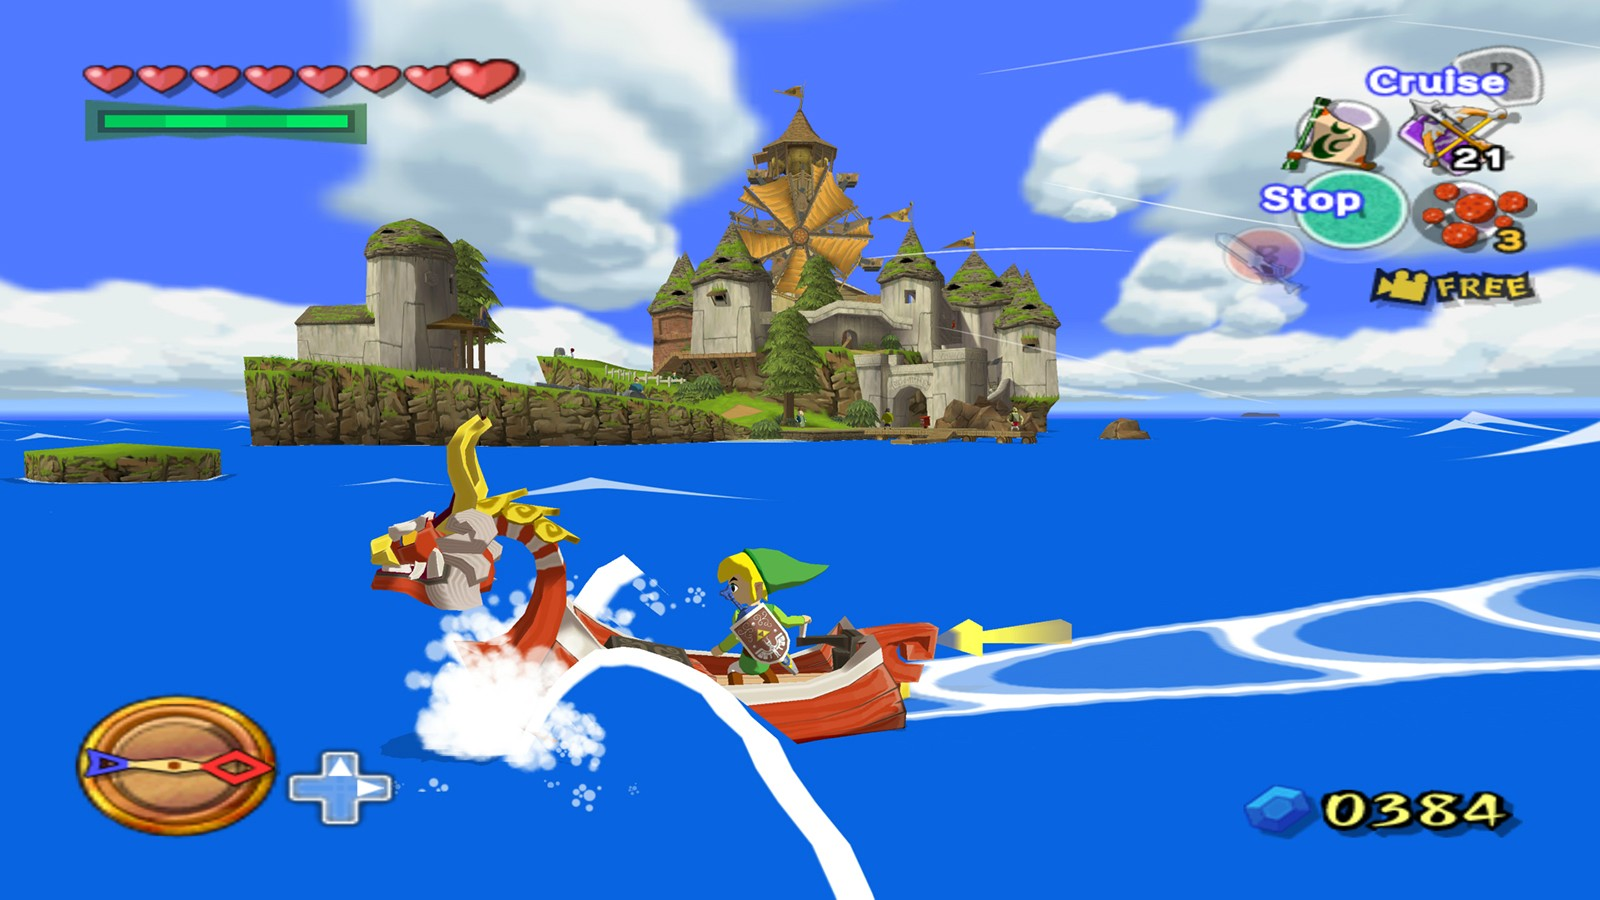 How To Play Wii Amp Gamecube Games With Dolphin